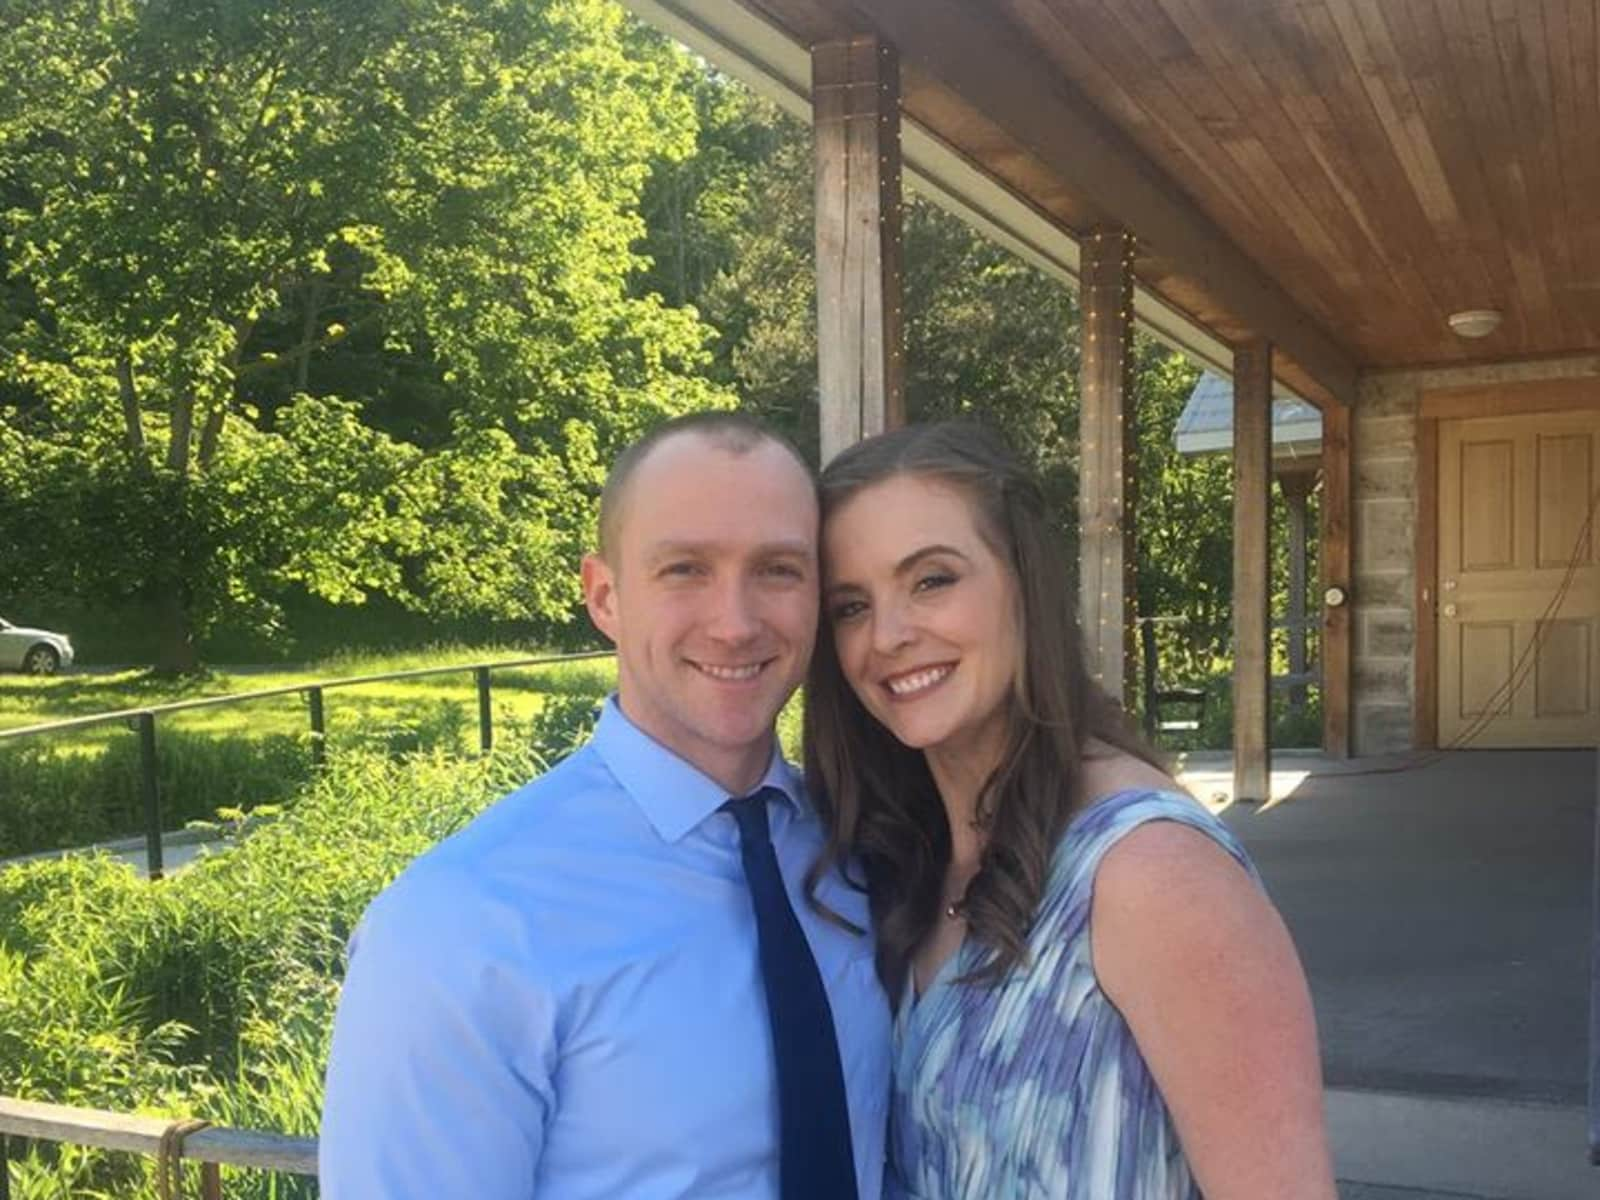 Shannon & Ryan from Peterborough, Ontario, Canada